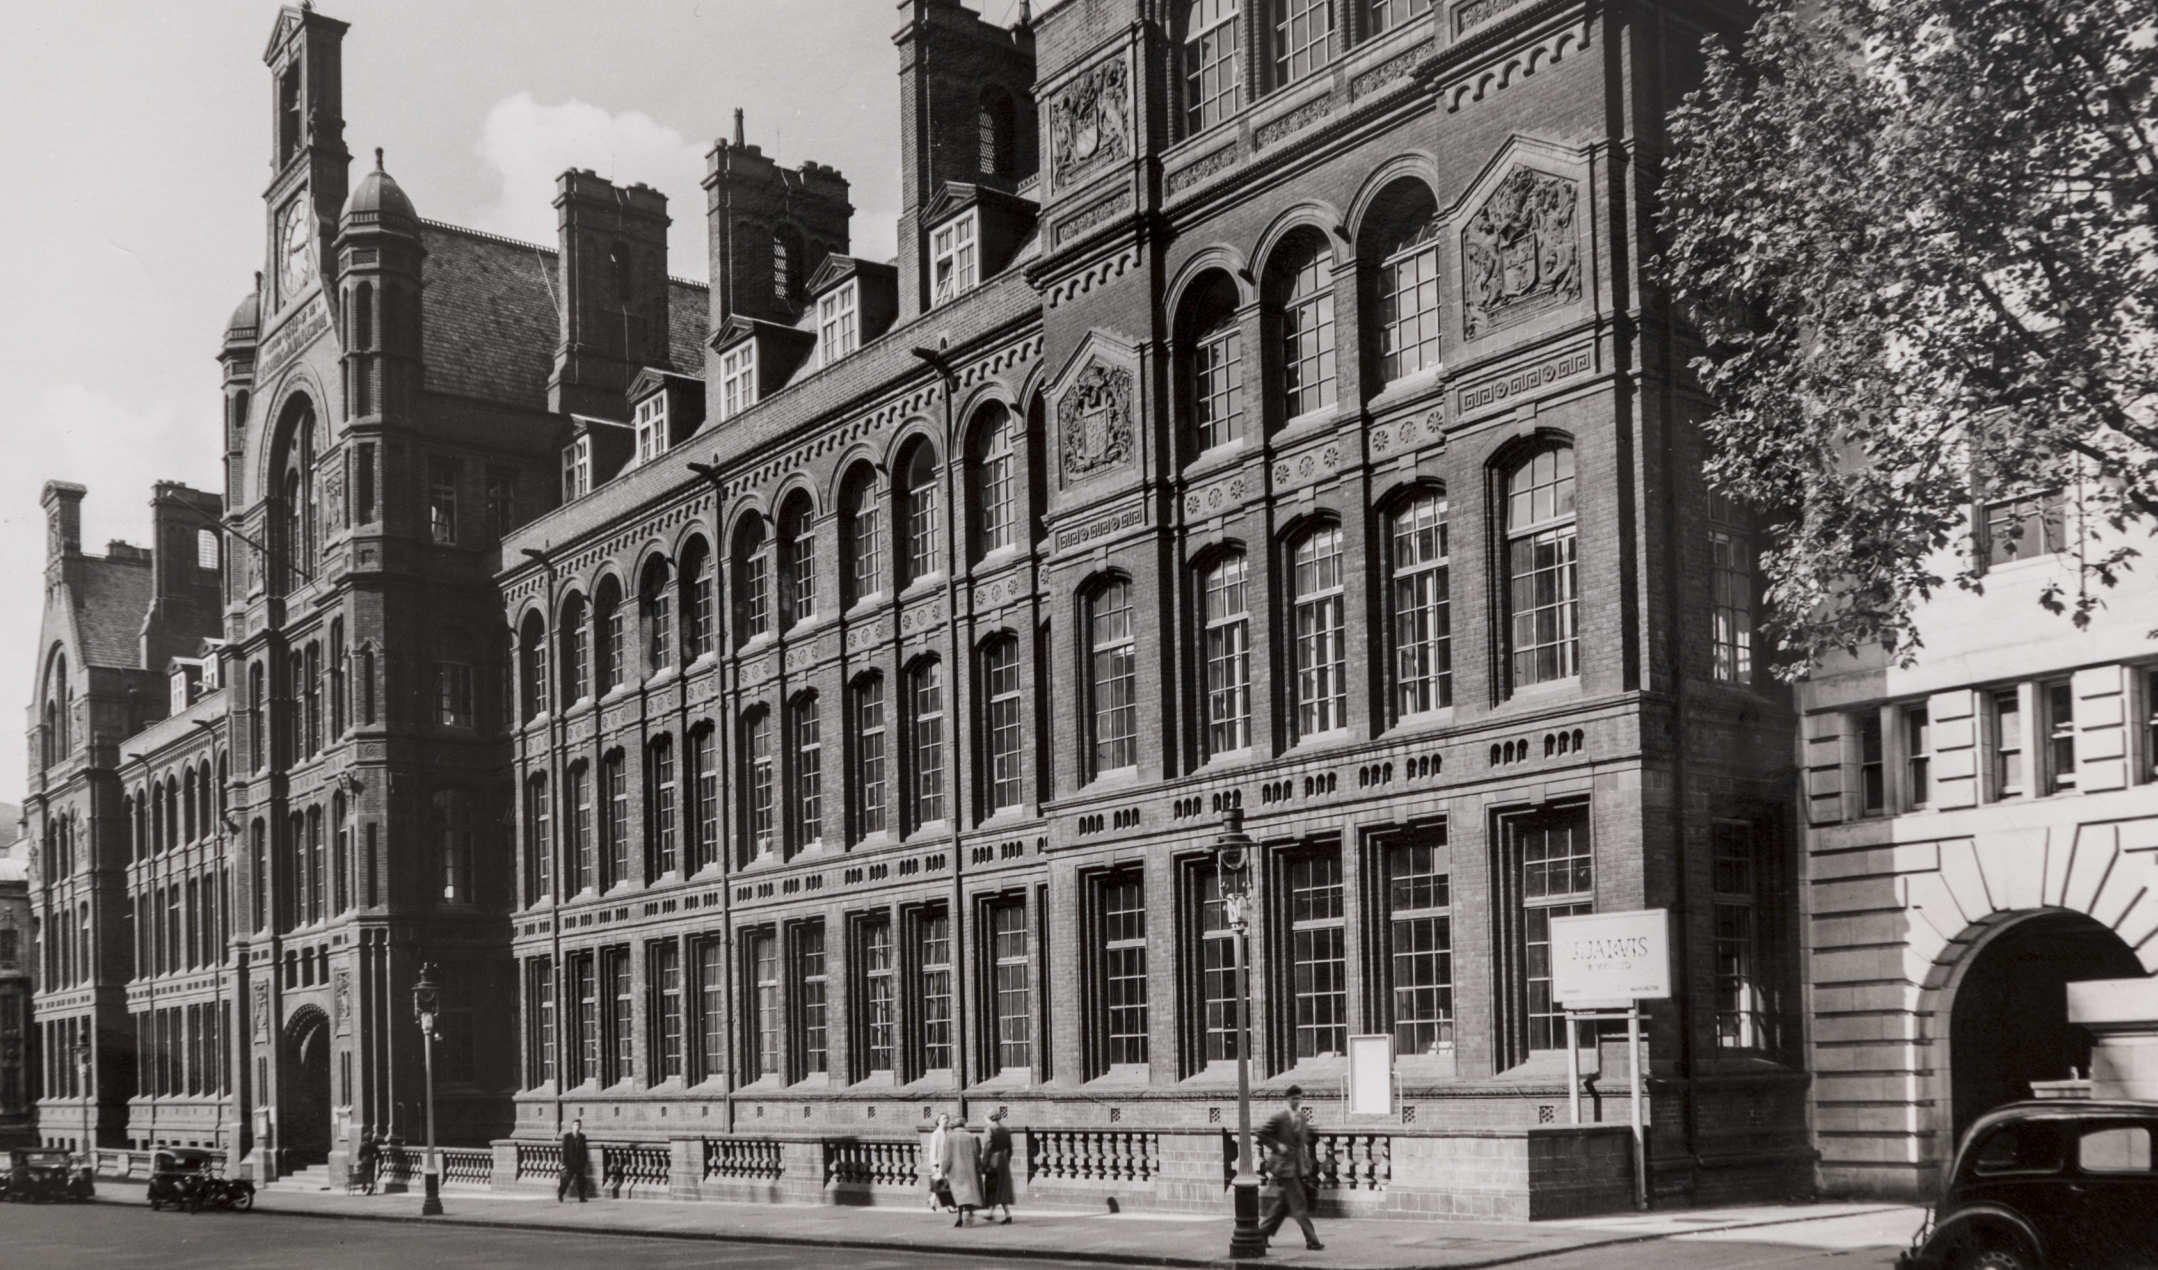 Waterhouse building 1957